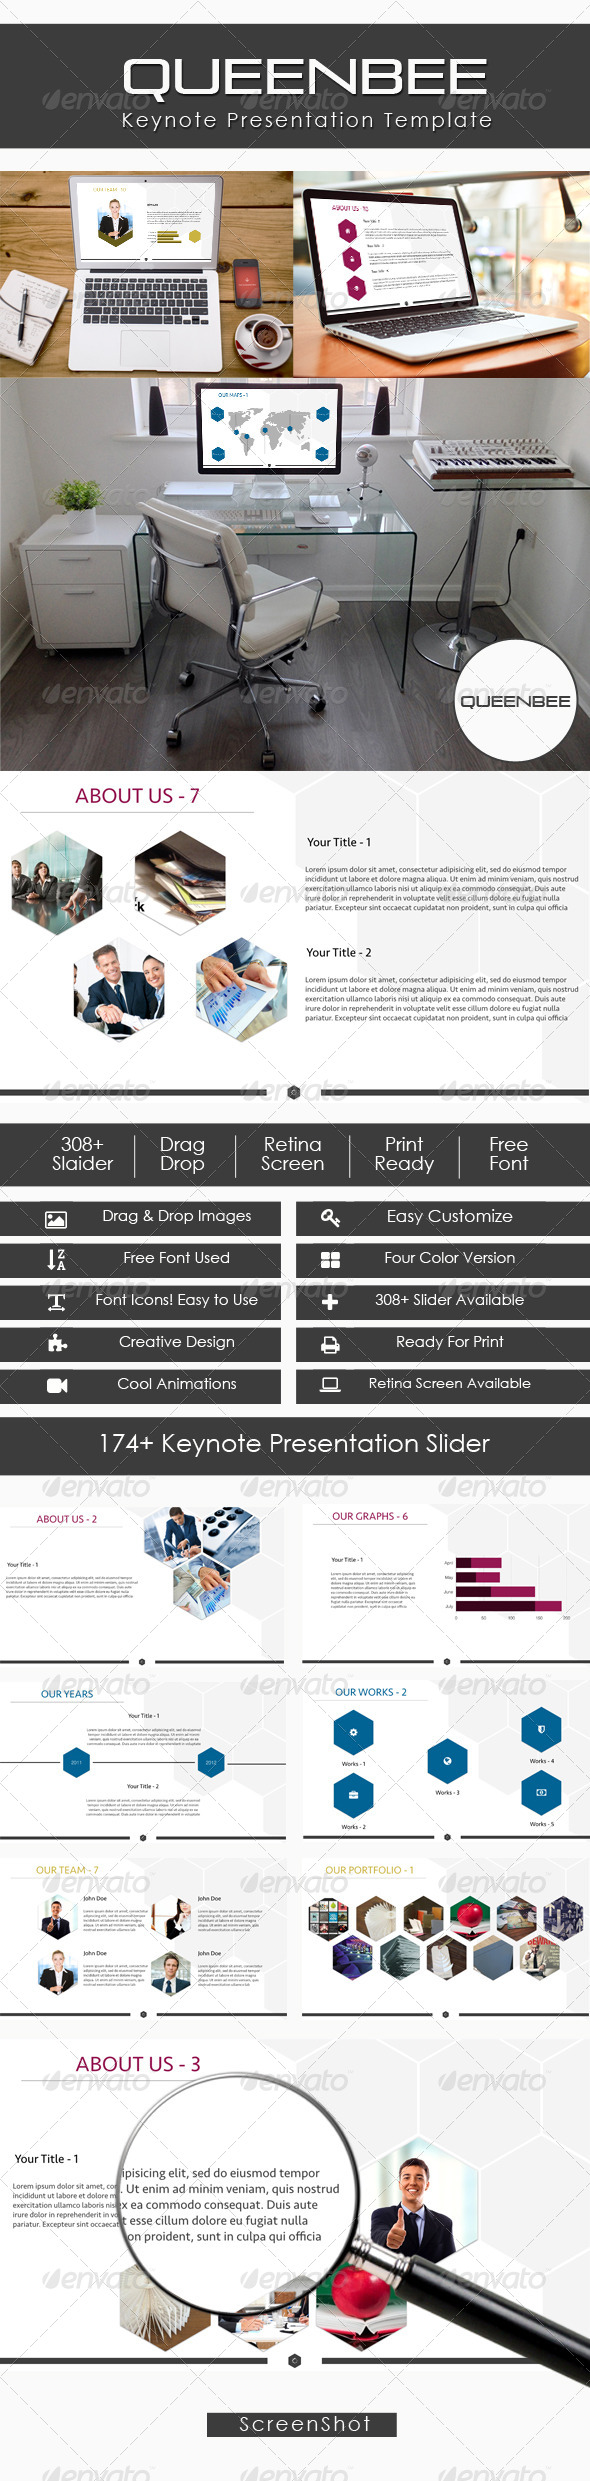 GraphicRiver QueenBee Creative Keynote Presentation 7586058